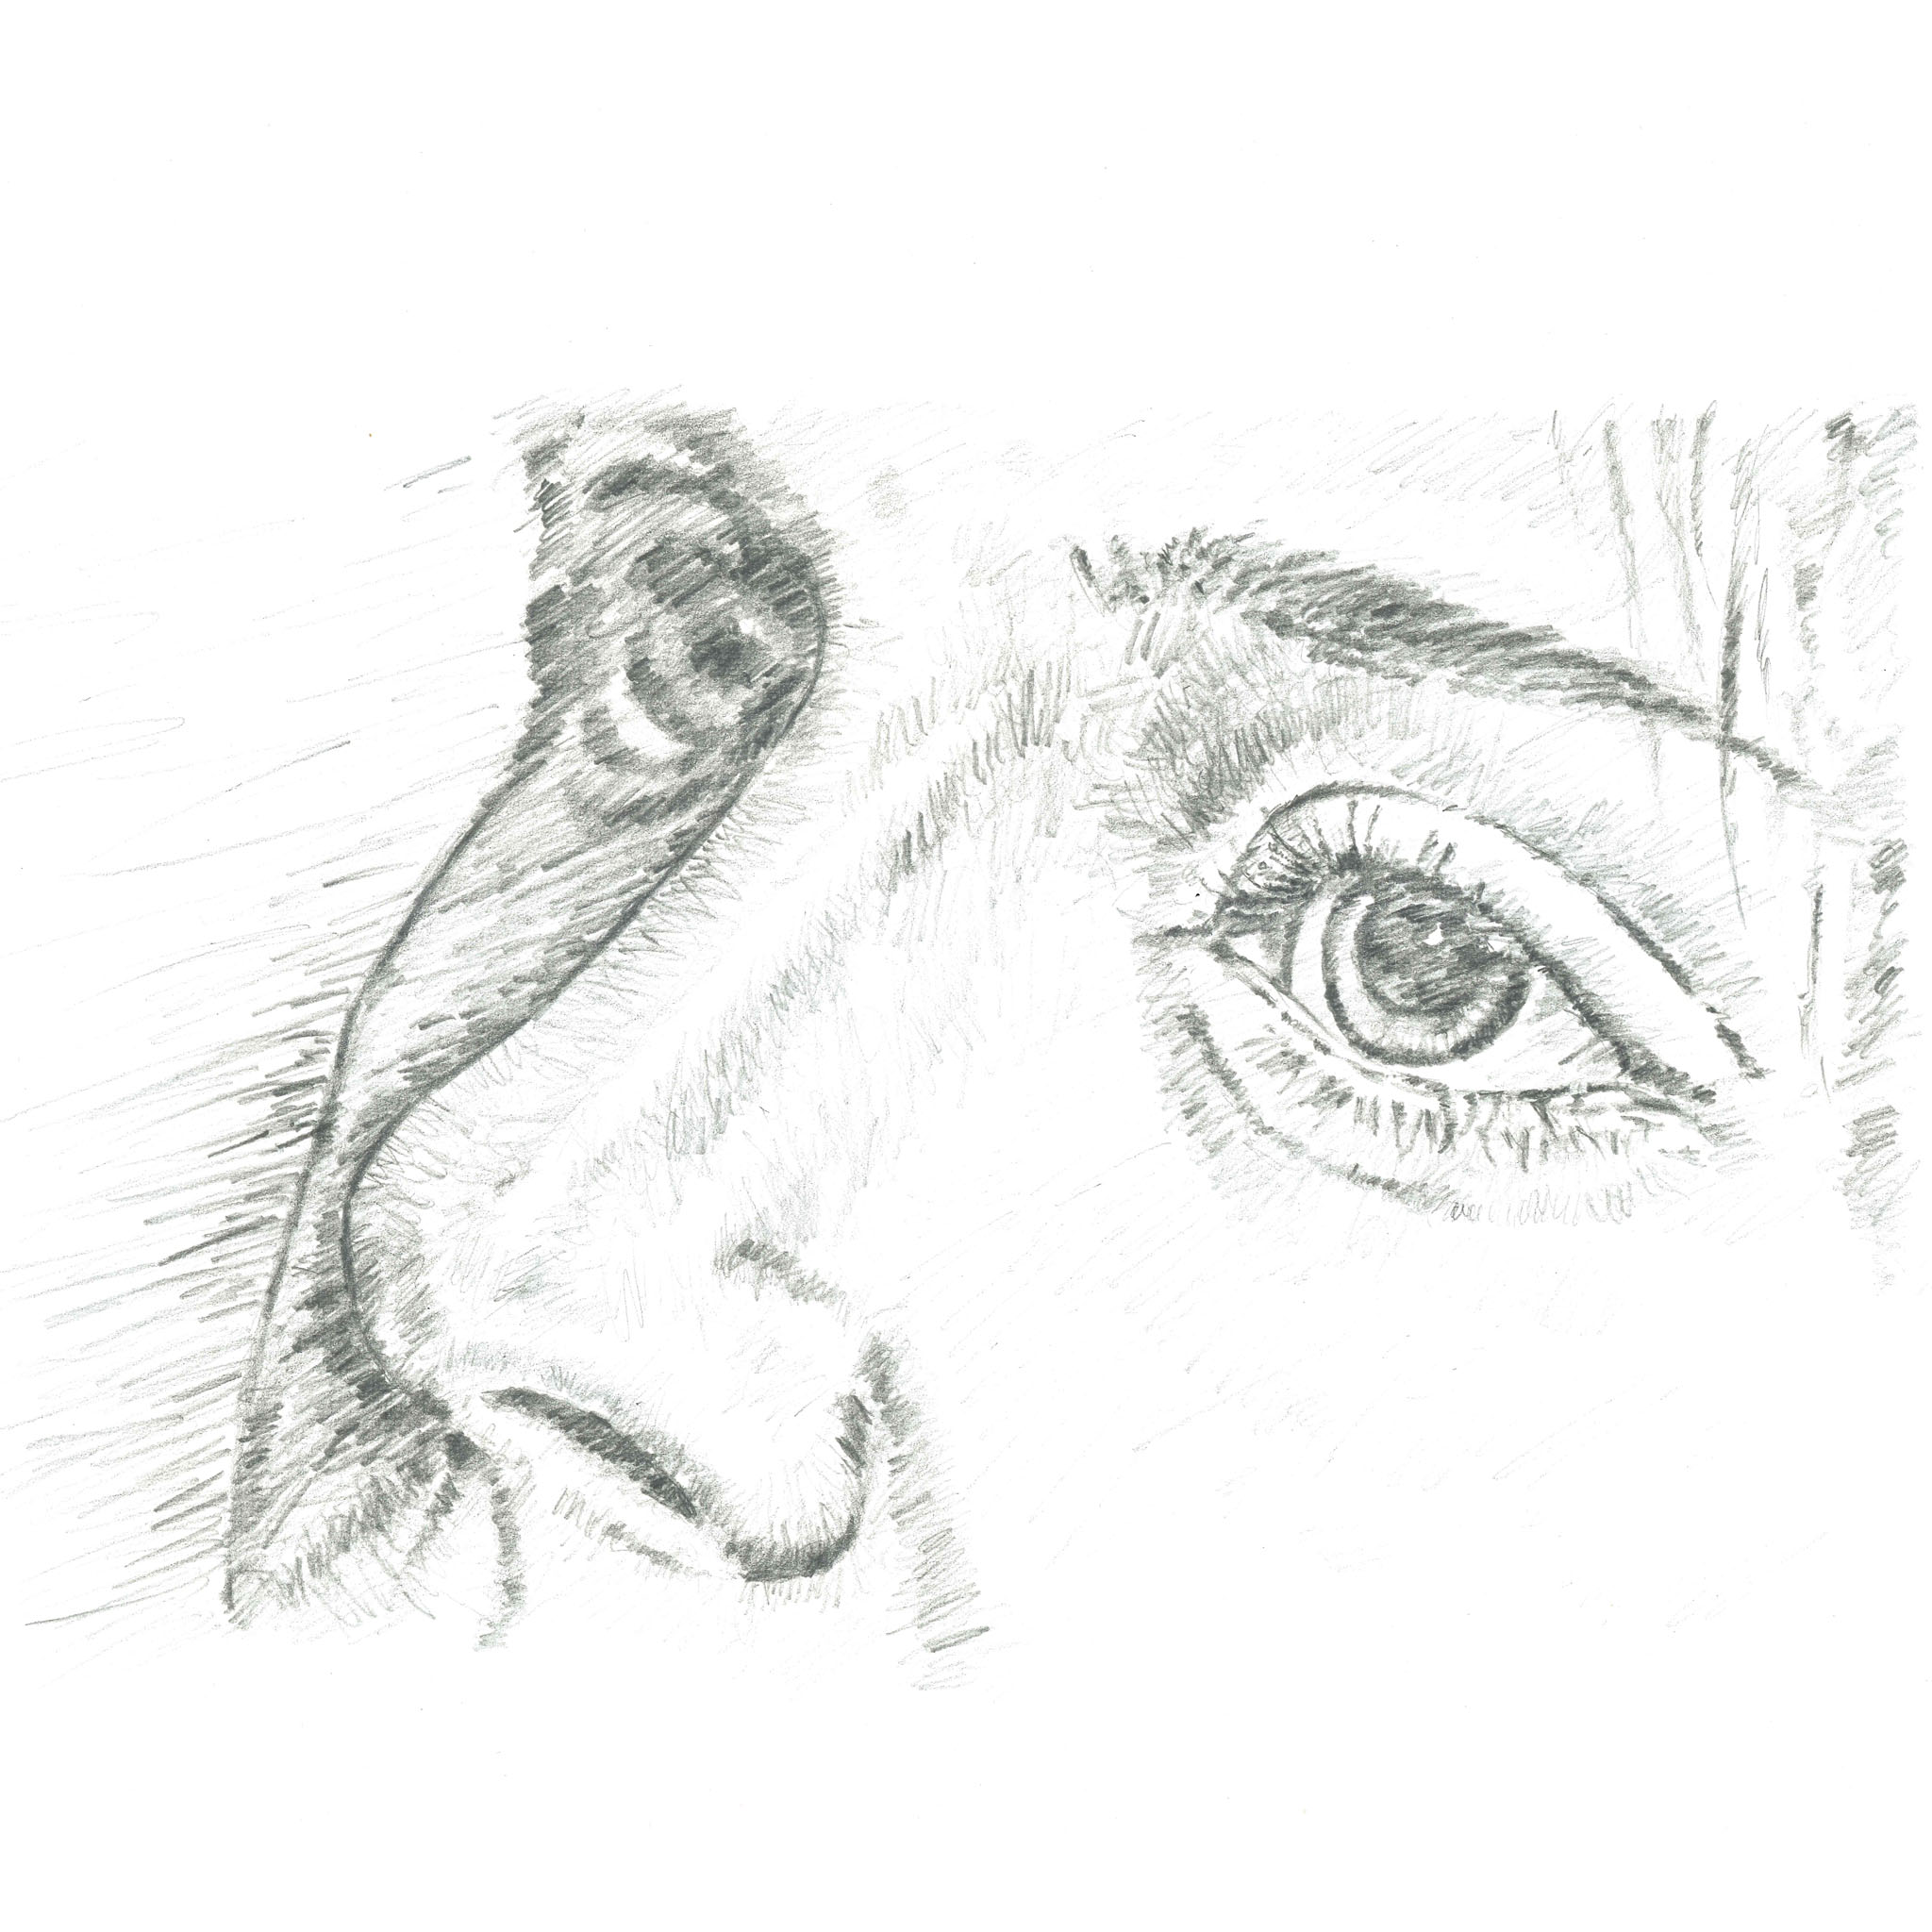 Sketch of eyes and nose